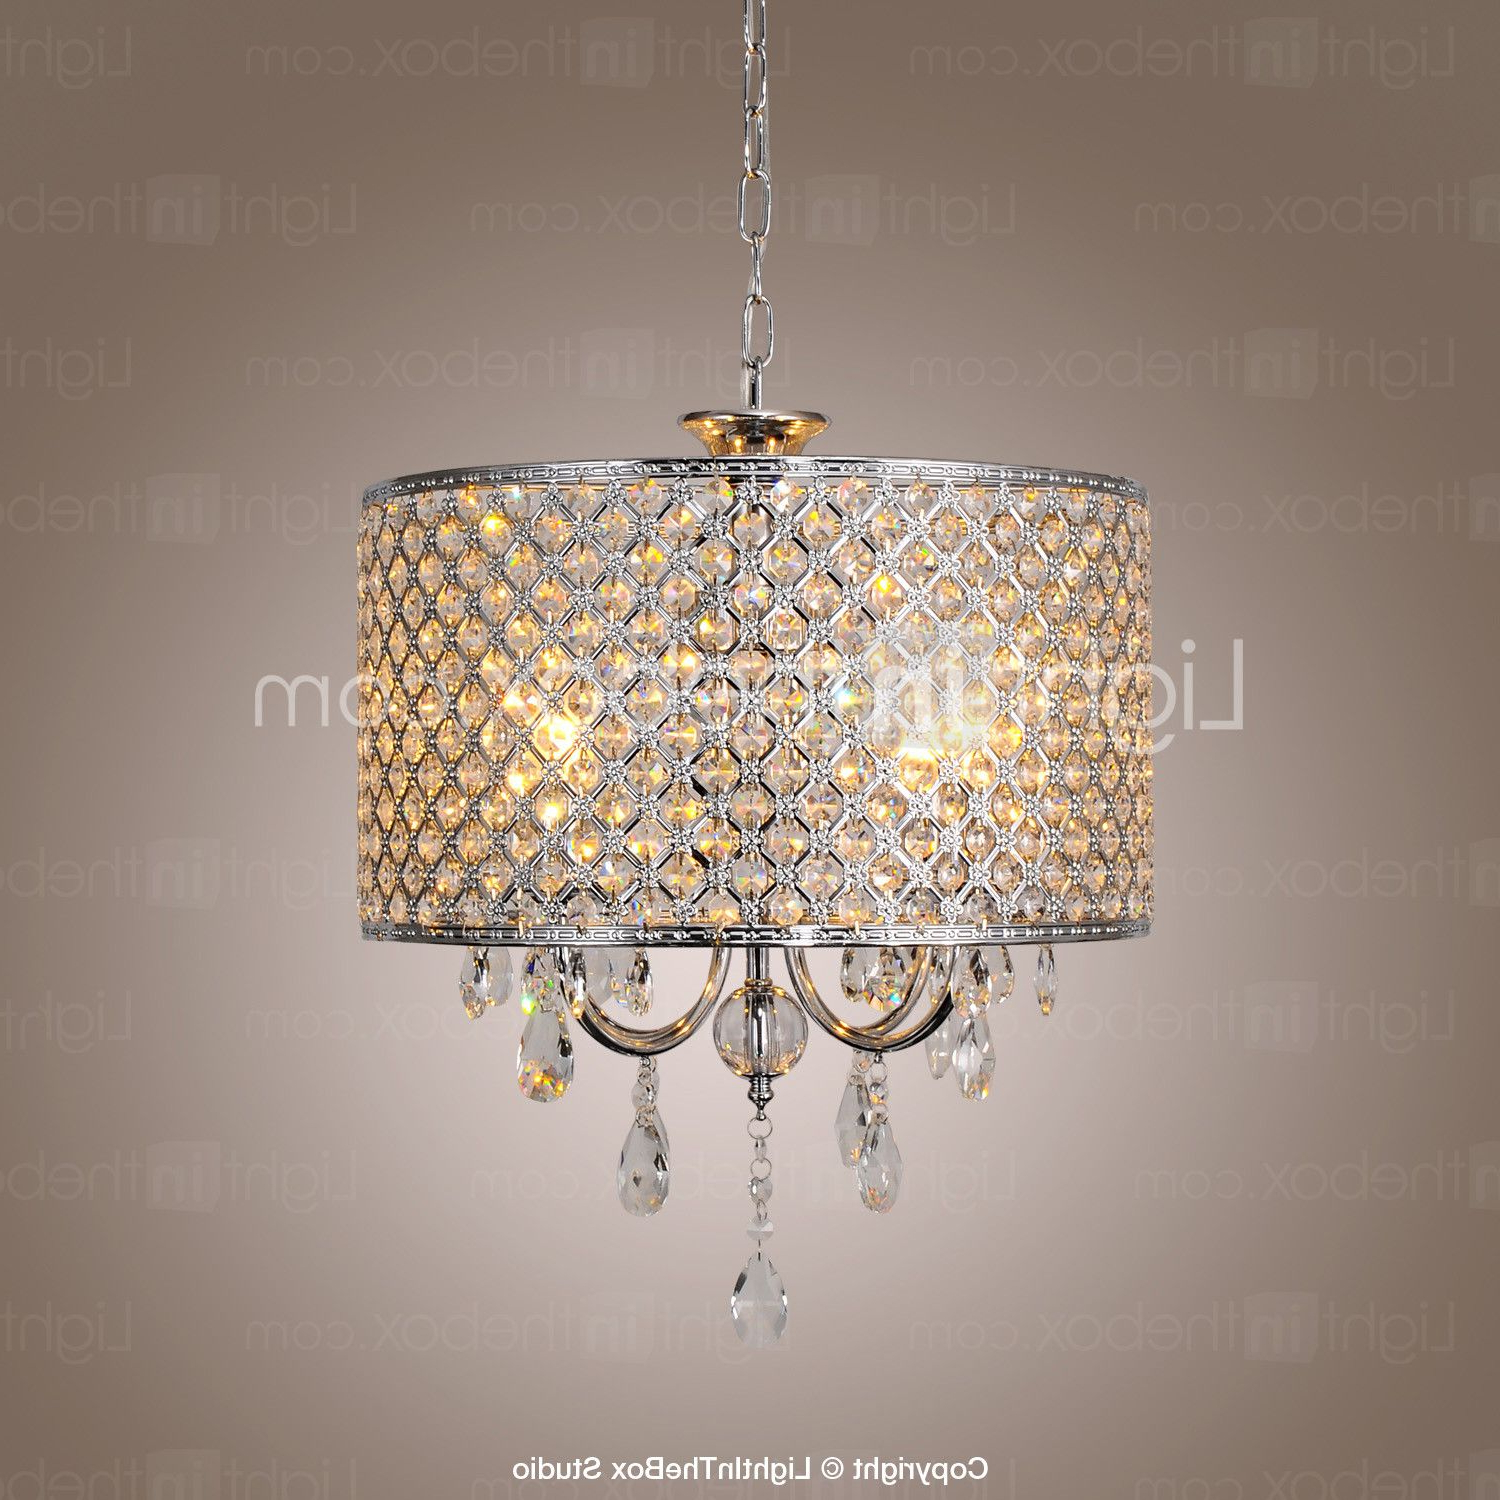 Recent Drum Chandelier Crystal Modern 4 Lights 2015 – $ (View 17 of 20)